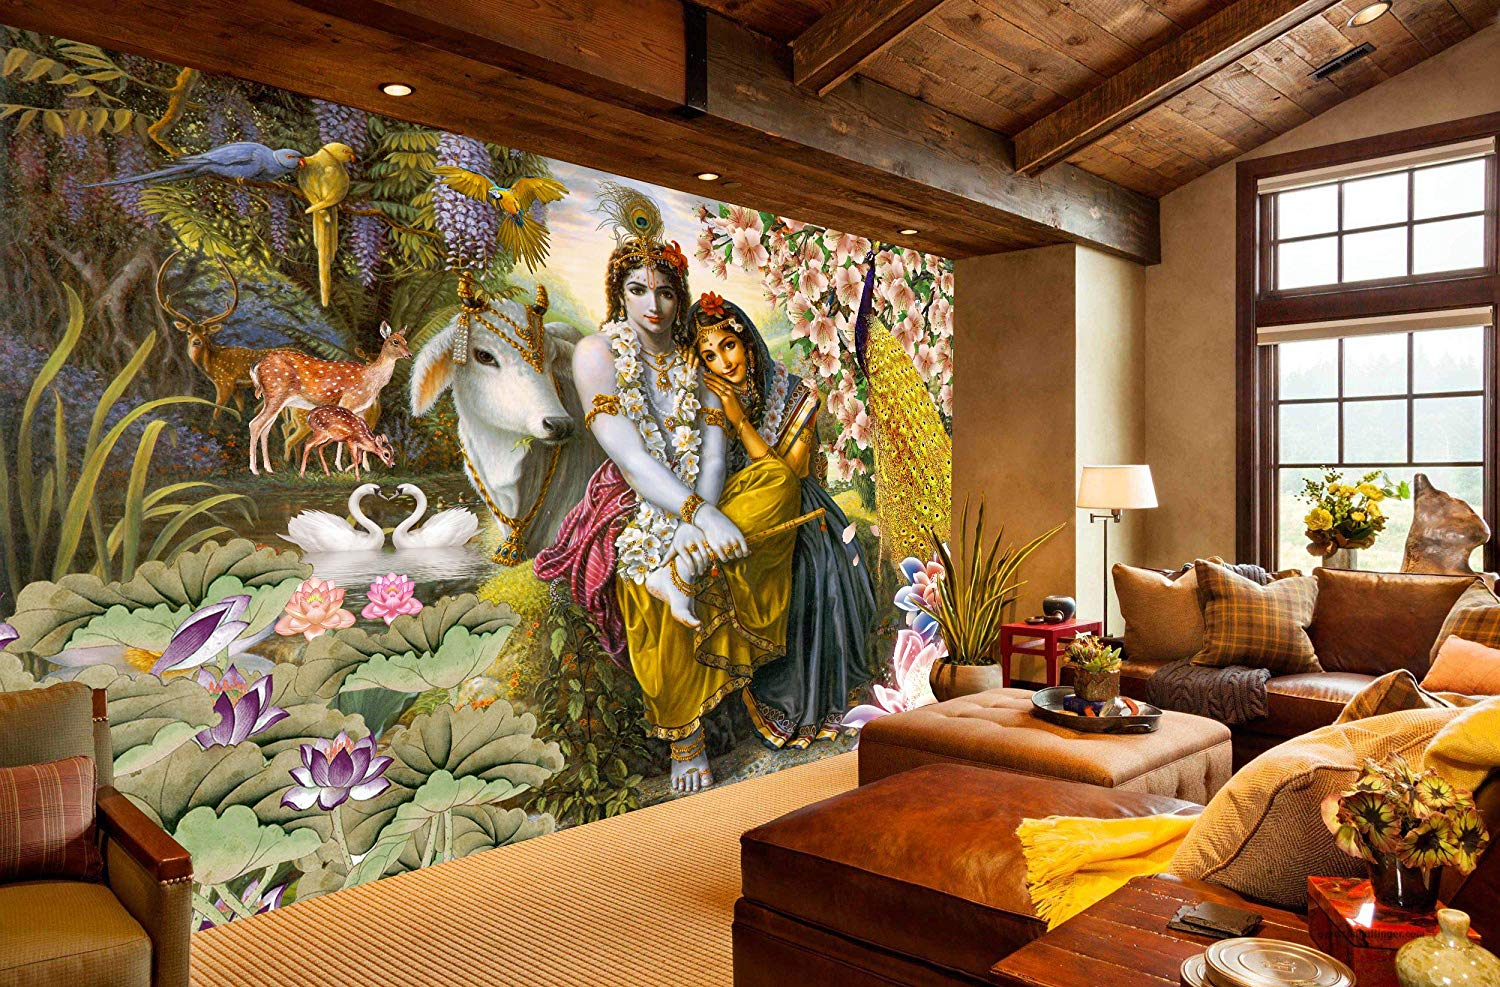 0 5528 radha krishna wallpaper for home wall